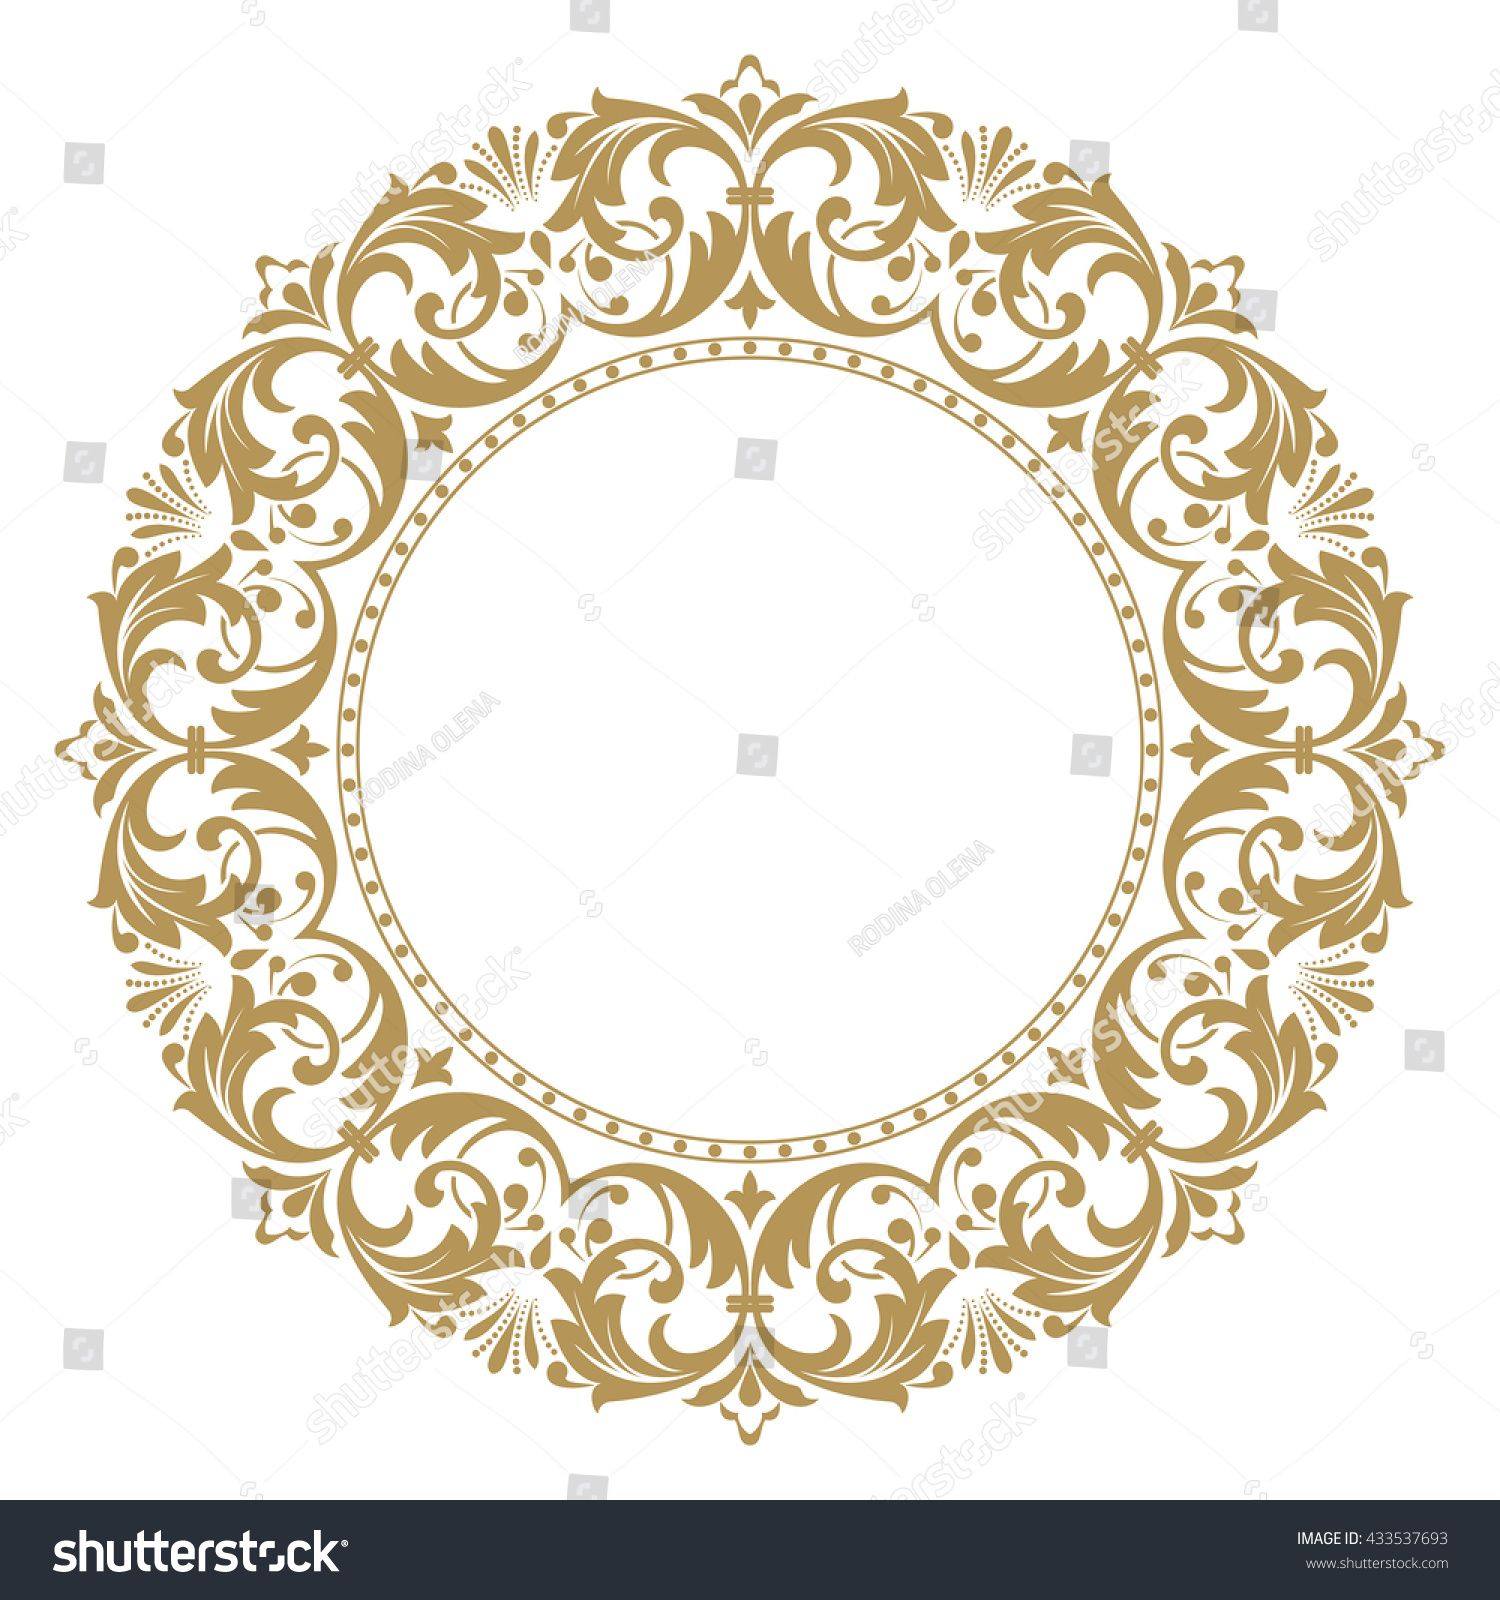 Decorative Line Art Frames For Design Template Elegant Vector Element For Design In Eastern Style Place For Lace Painting Diy Wall Painting Decorative Lines